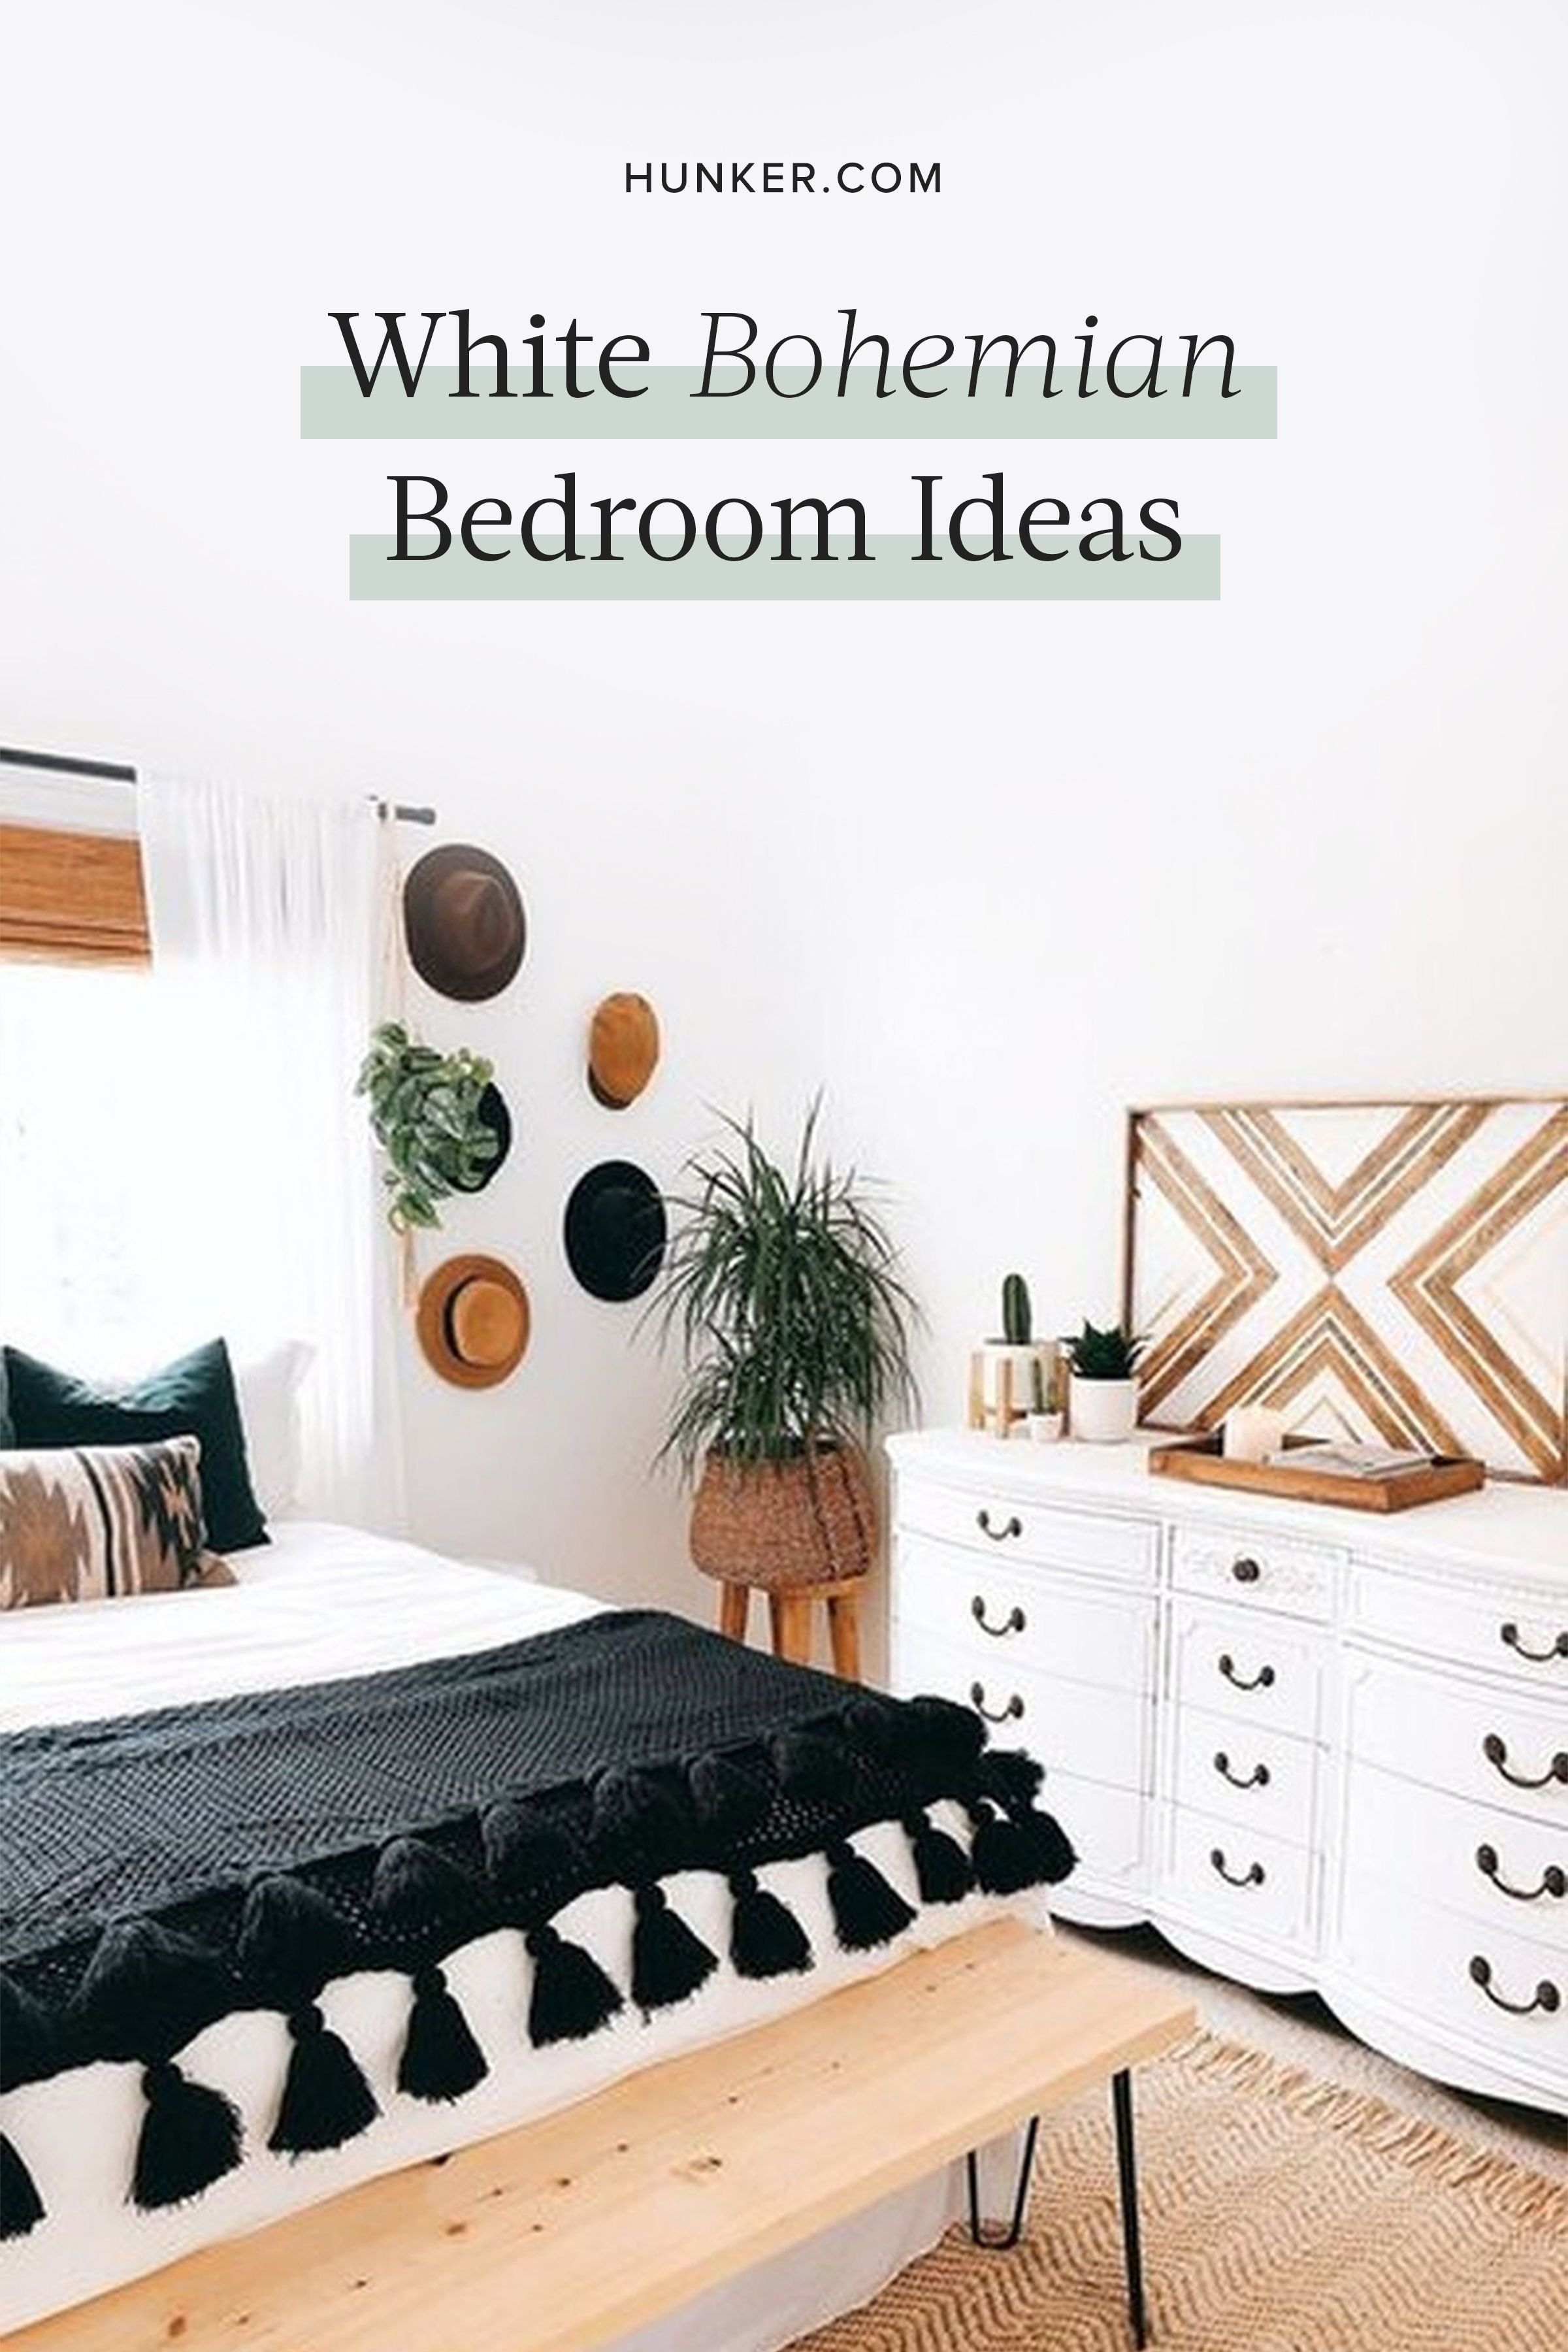 Photo of These White Bohemian Bedroom Ideas Are a Breath of Fresh Air